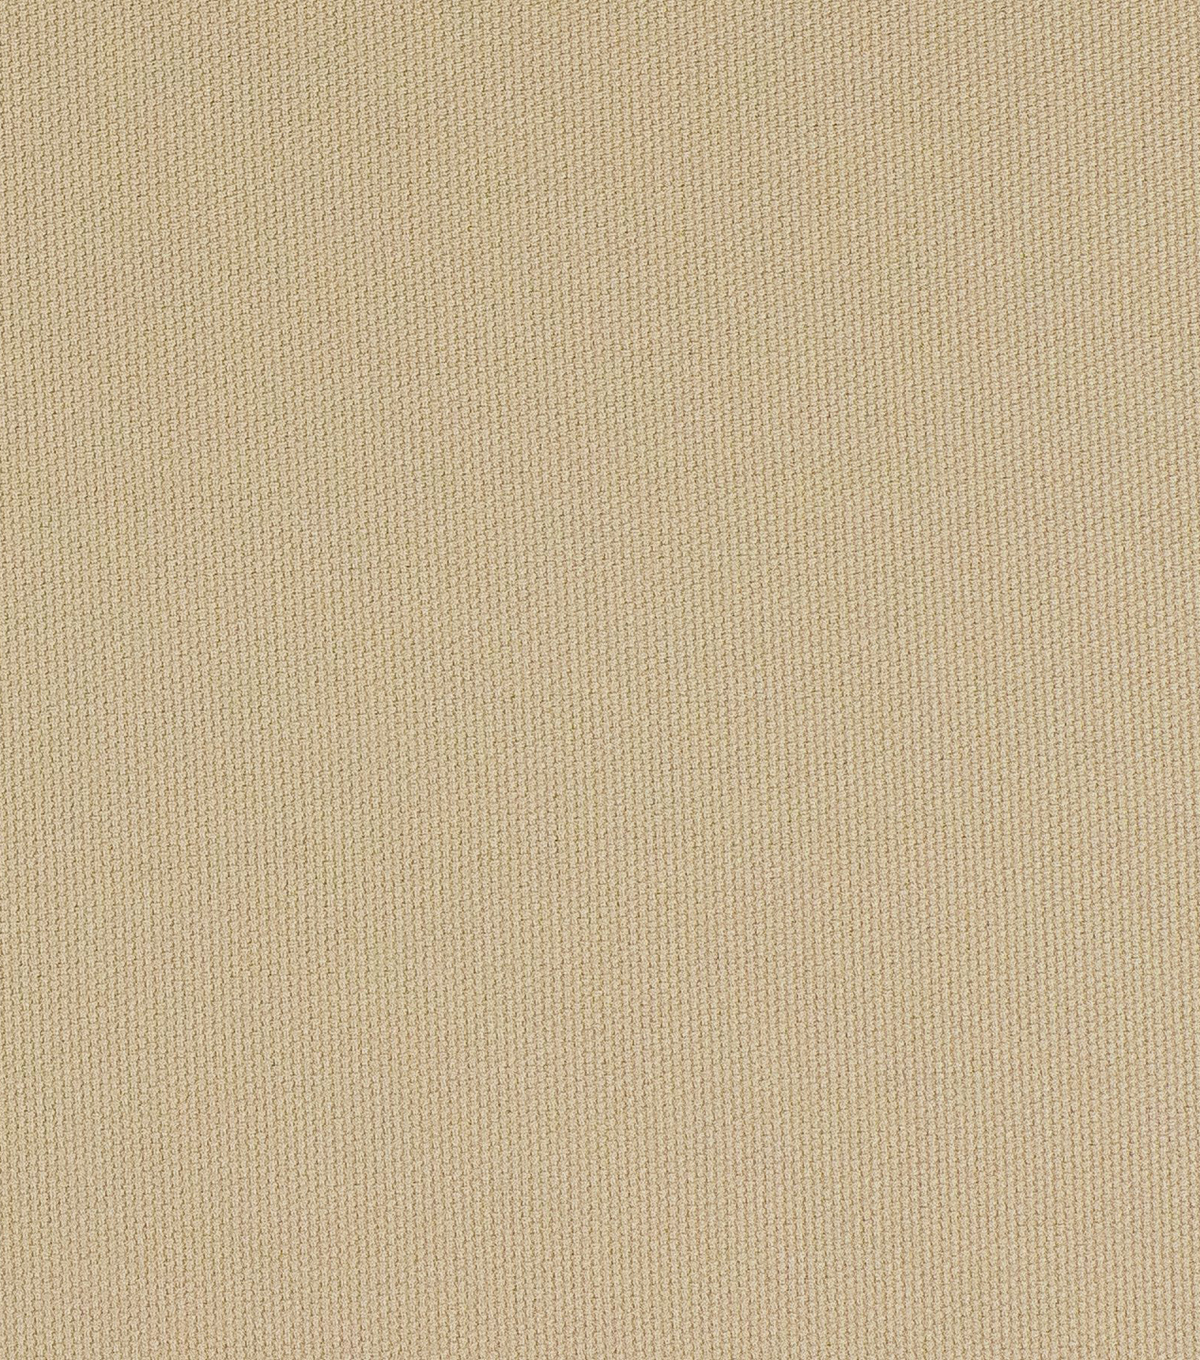 Home Decor 8\u0022x8\u0022 Fabric Swatch-Elite Orion Sand